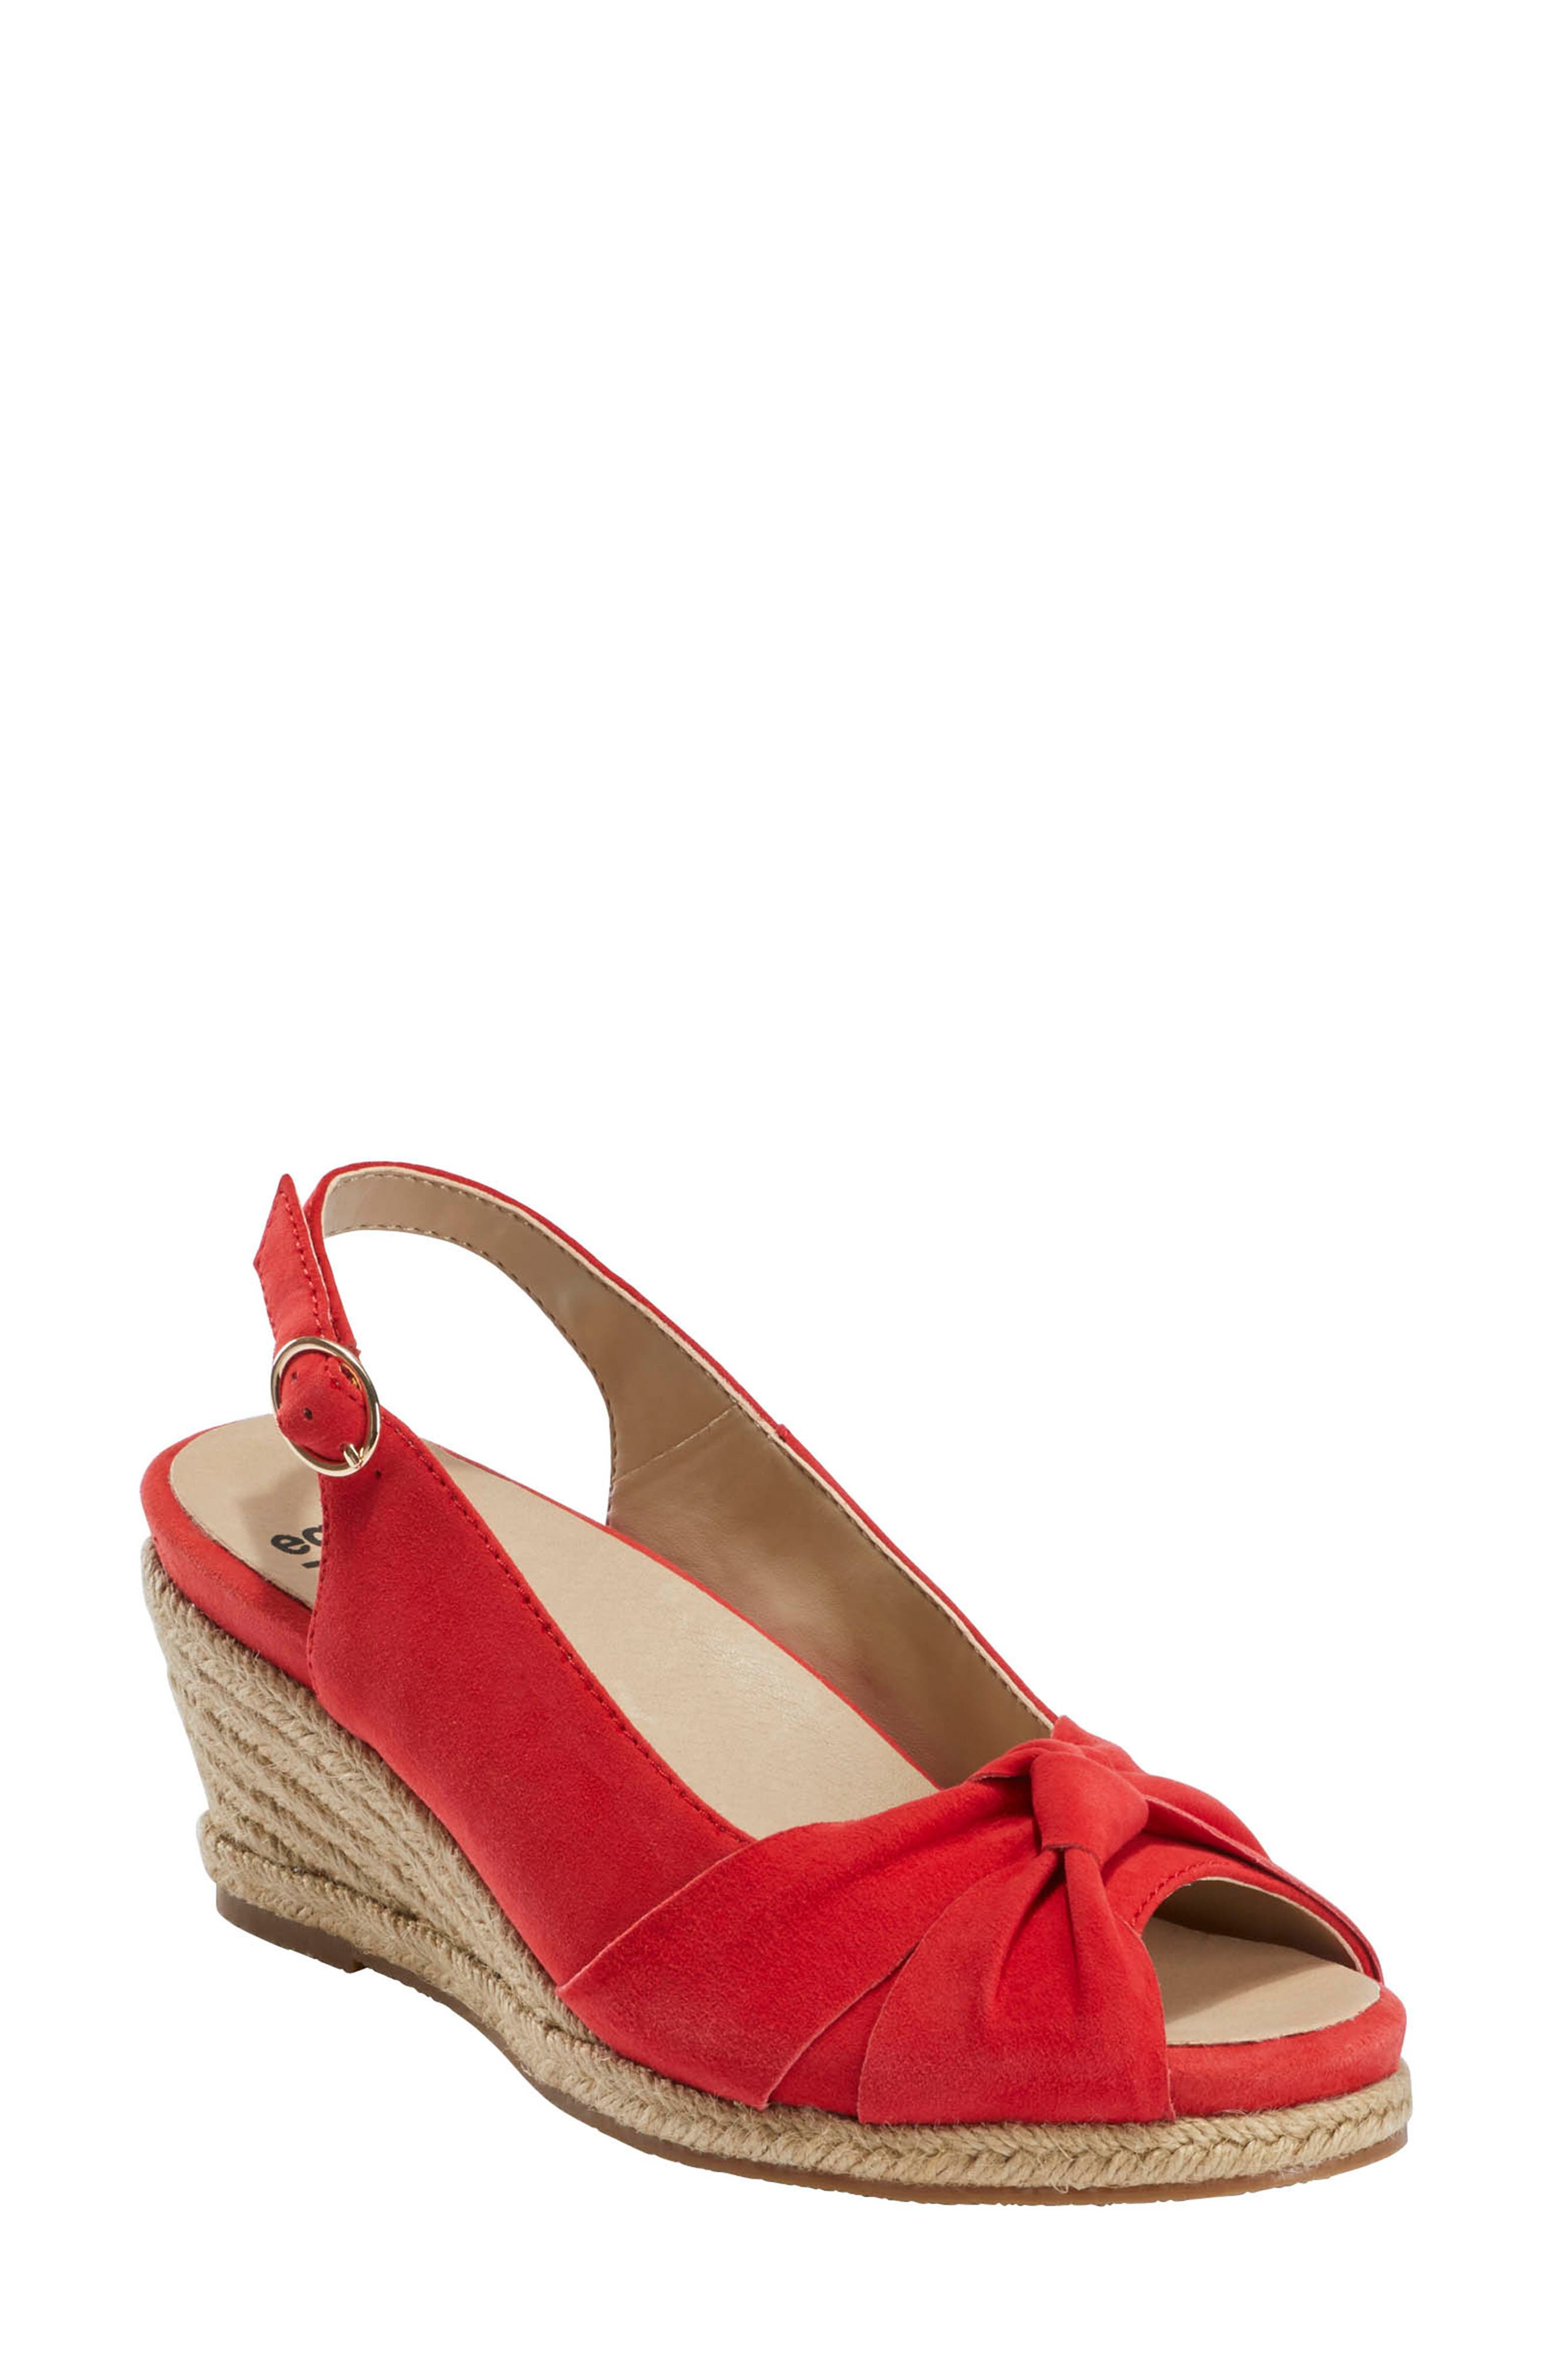 A contoured Powerpath footbed with arch support and foam cushioning offers serious comfort in this darling peep-toe on a summery espadrille wedge. Style Name: Earth Thara Bermuda Peep Toe Wedge Sandal (Women). Style Number: 6024479. Available in stores.